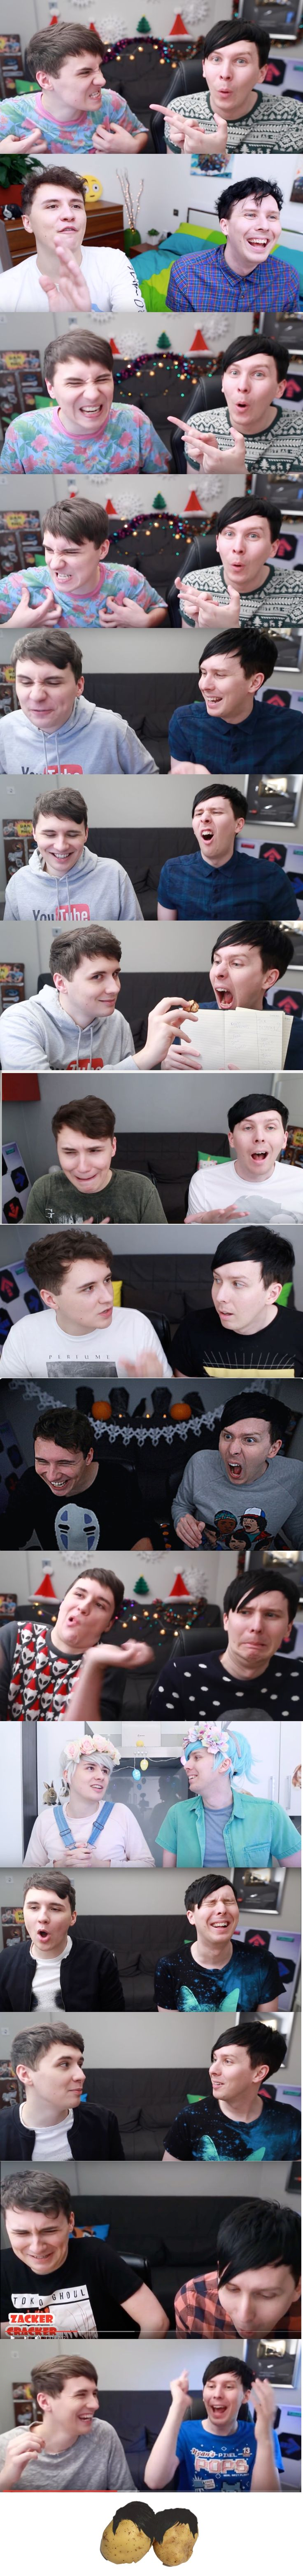 just some of my favorite screenshots of my smol beans